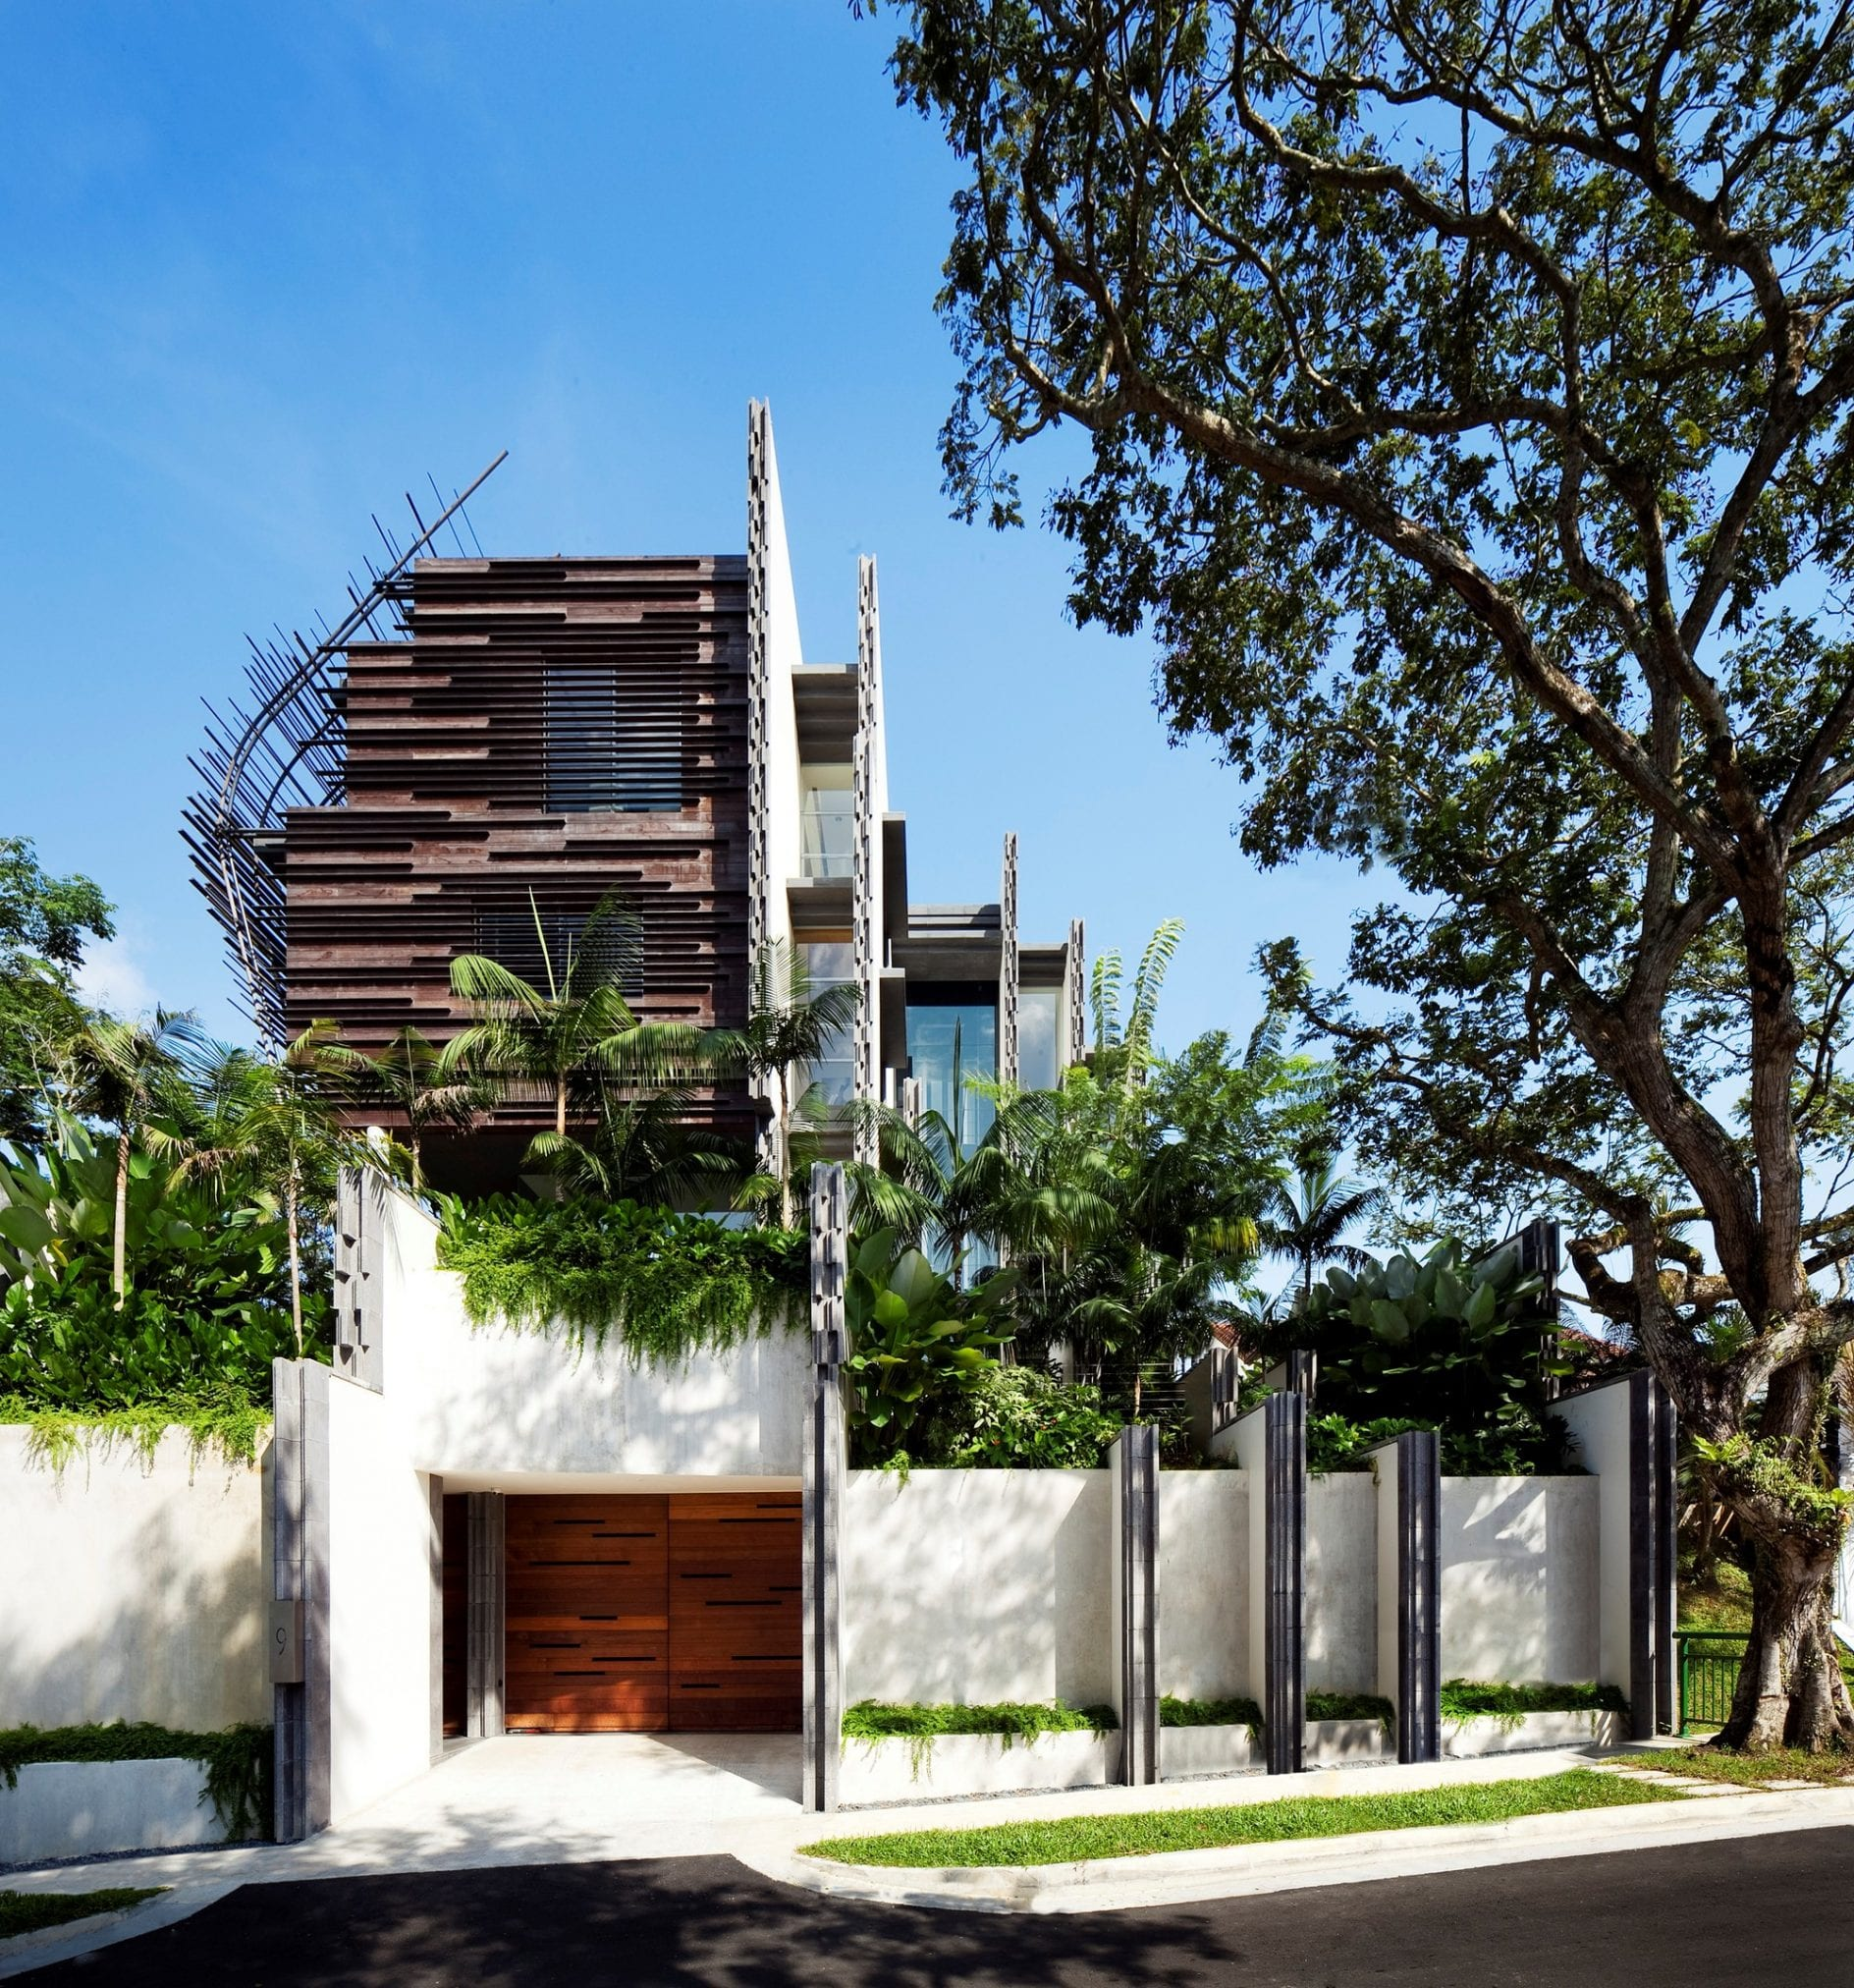 The Nest House in Singapore